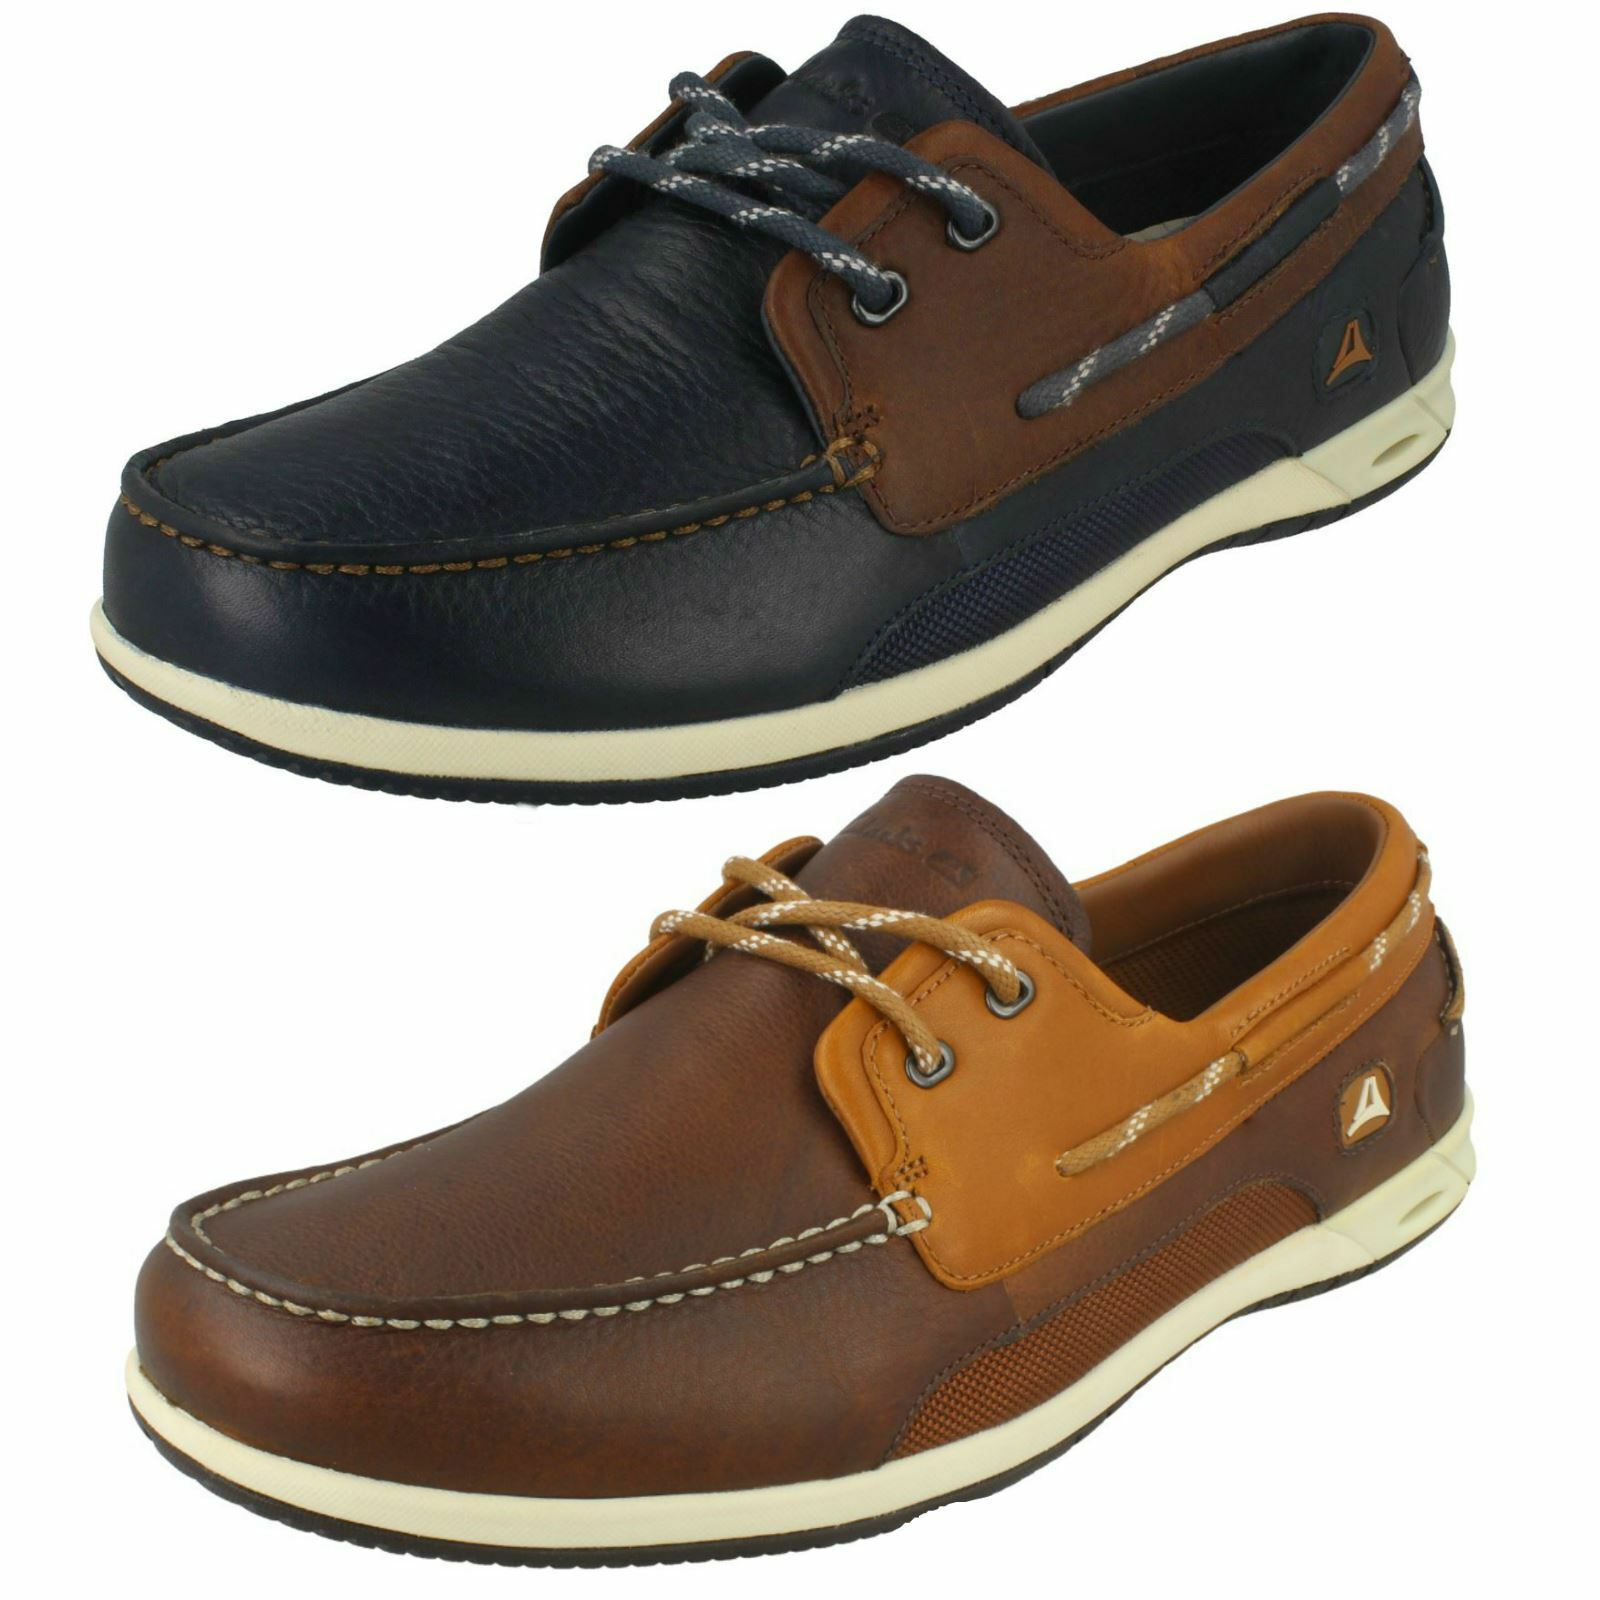 Mens Clarks Boat shoes 'Orson Harbour'